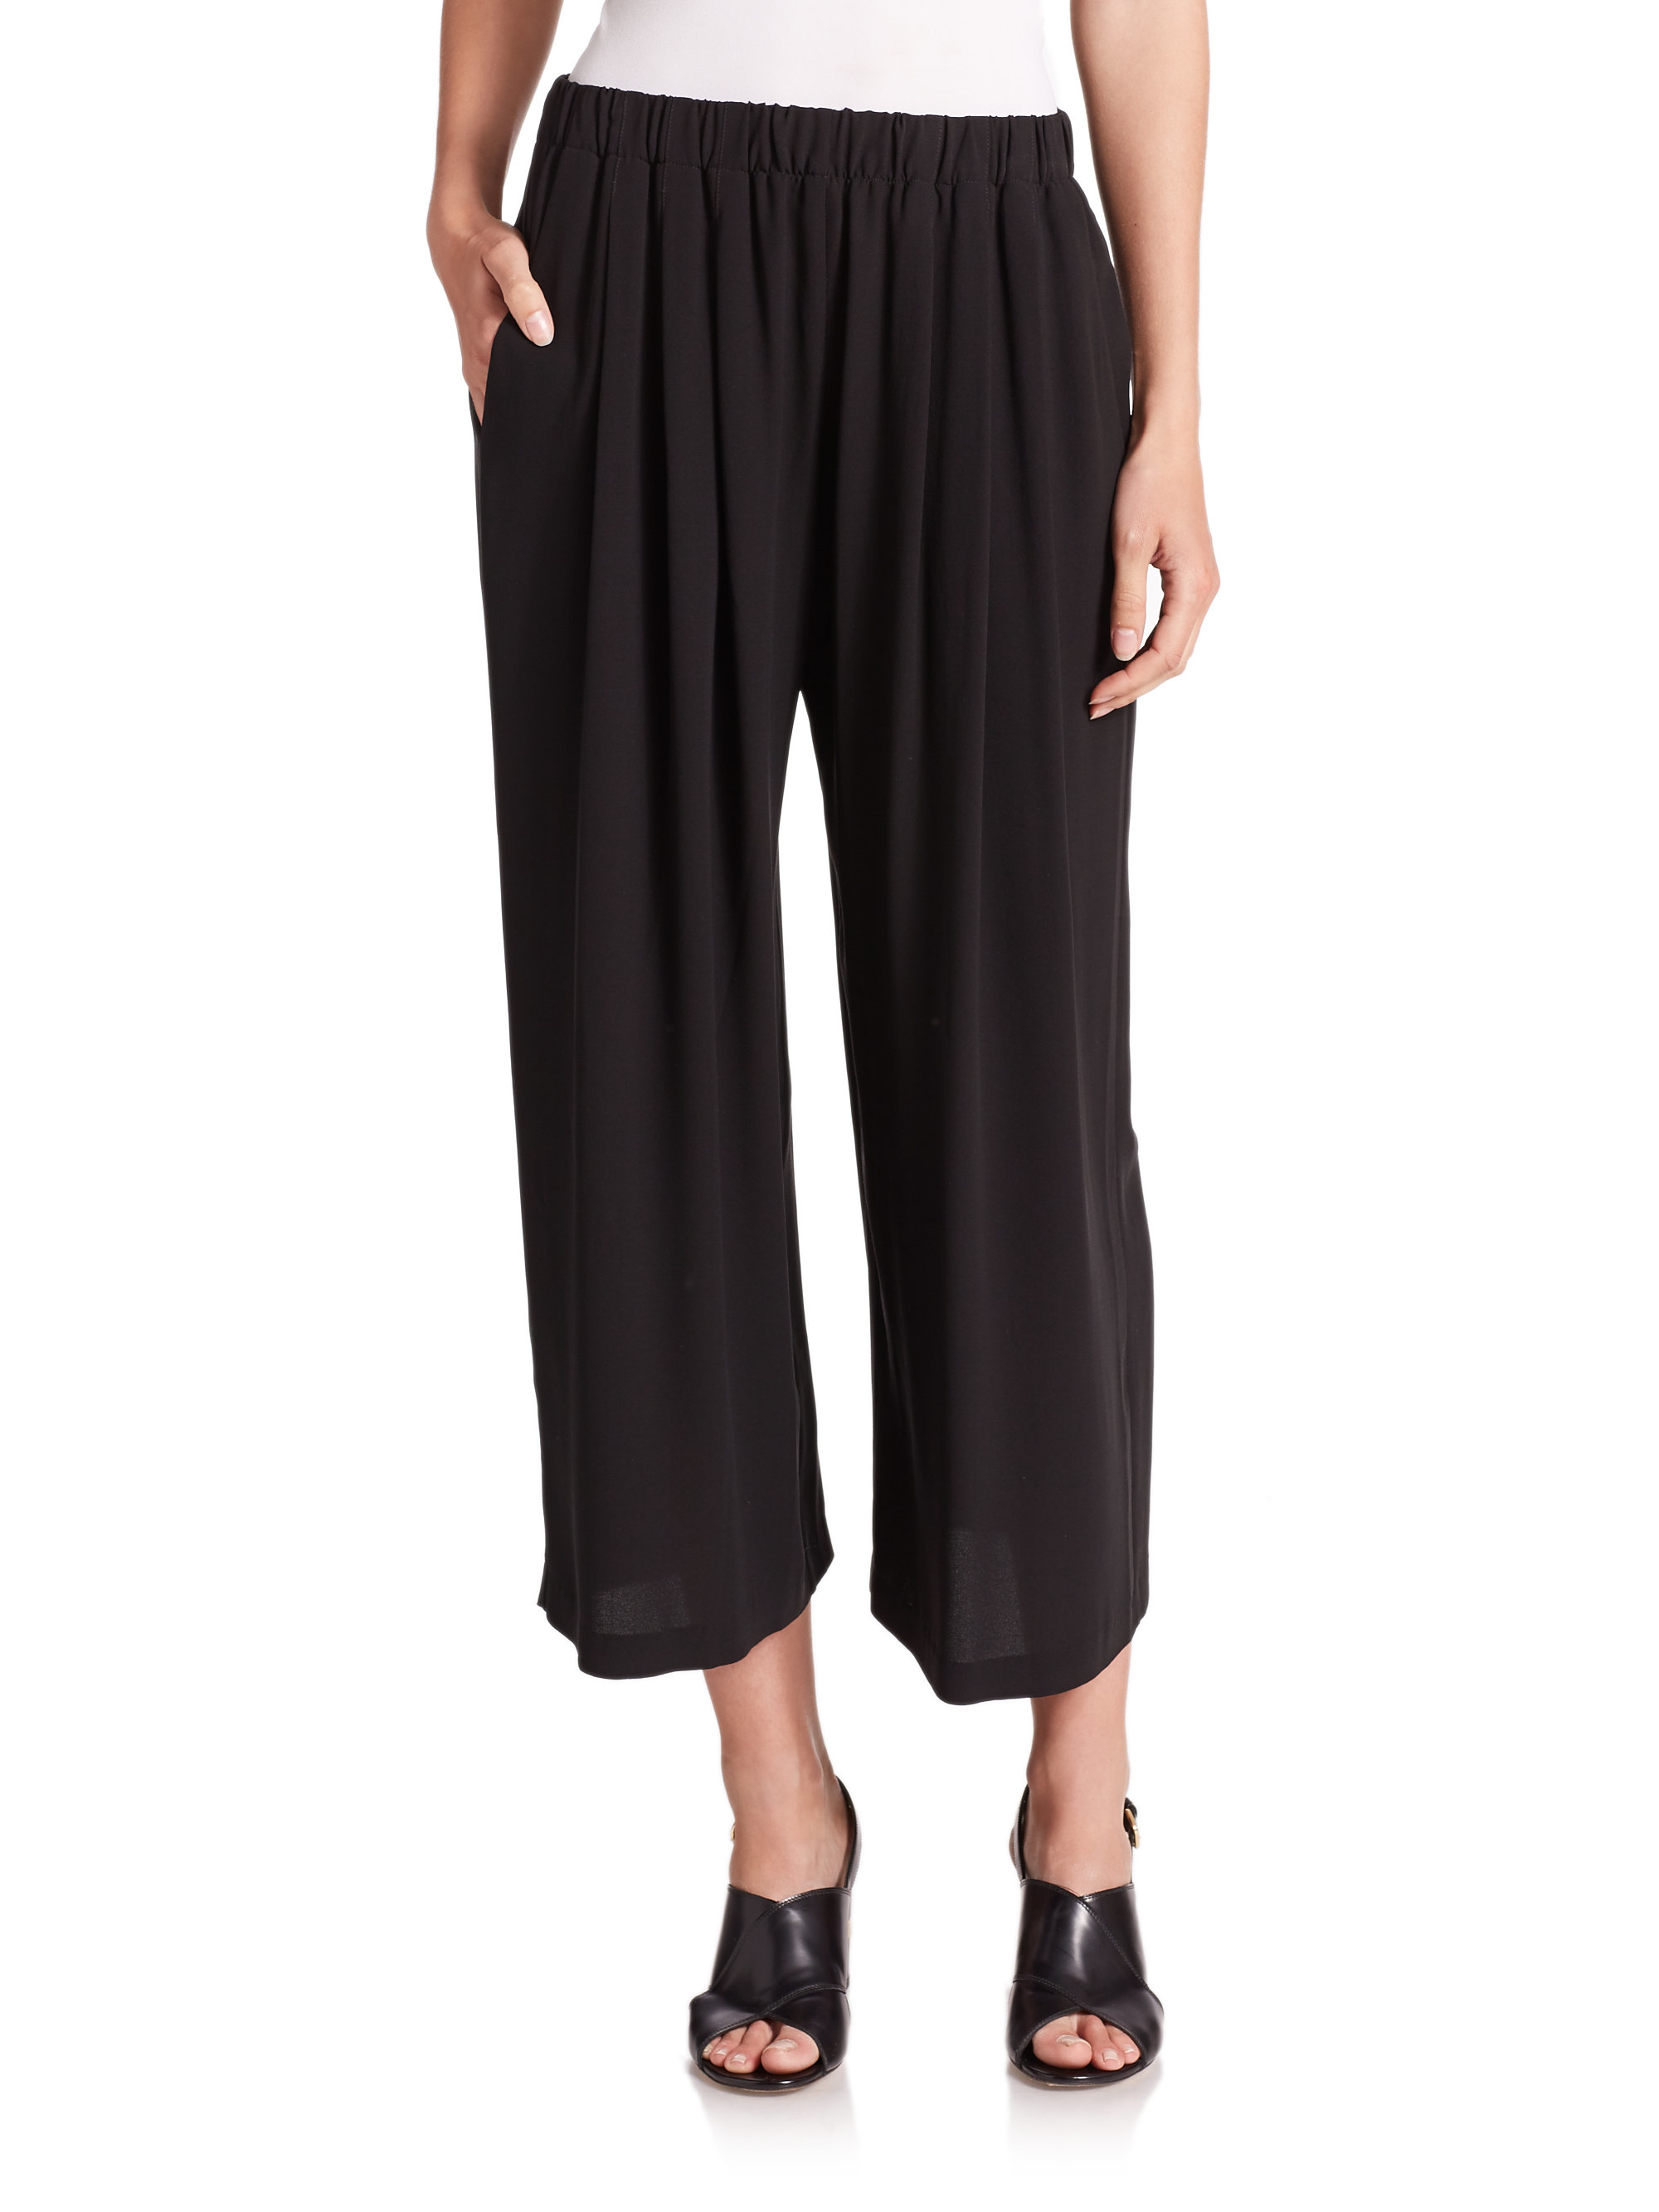 Eileen fisher Ankle-length Silk Pants in Black | Lyst